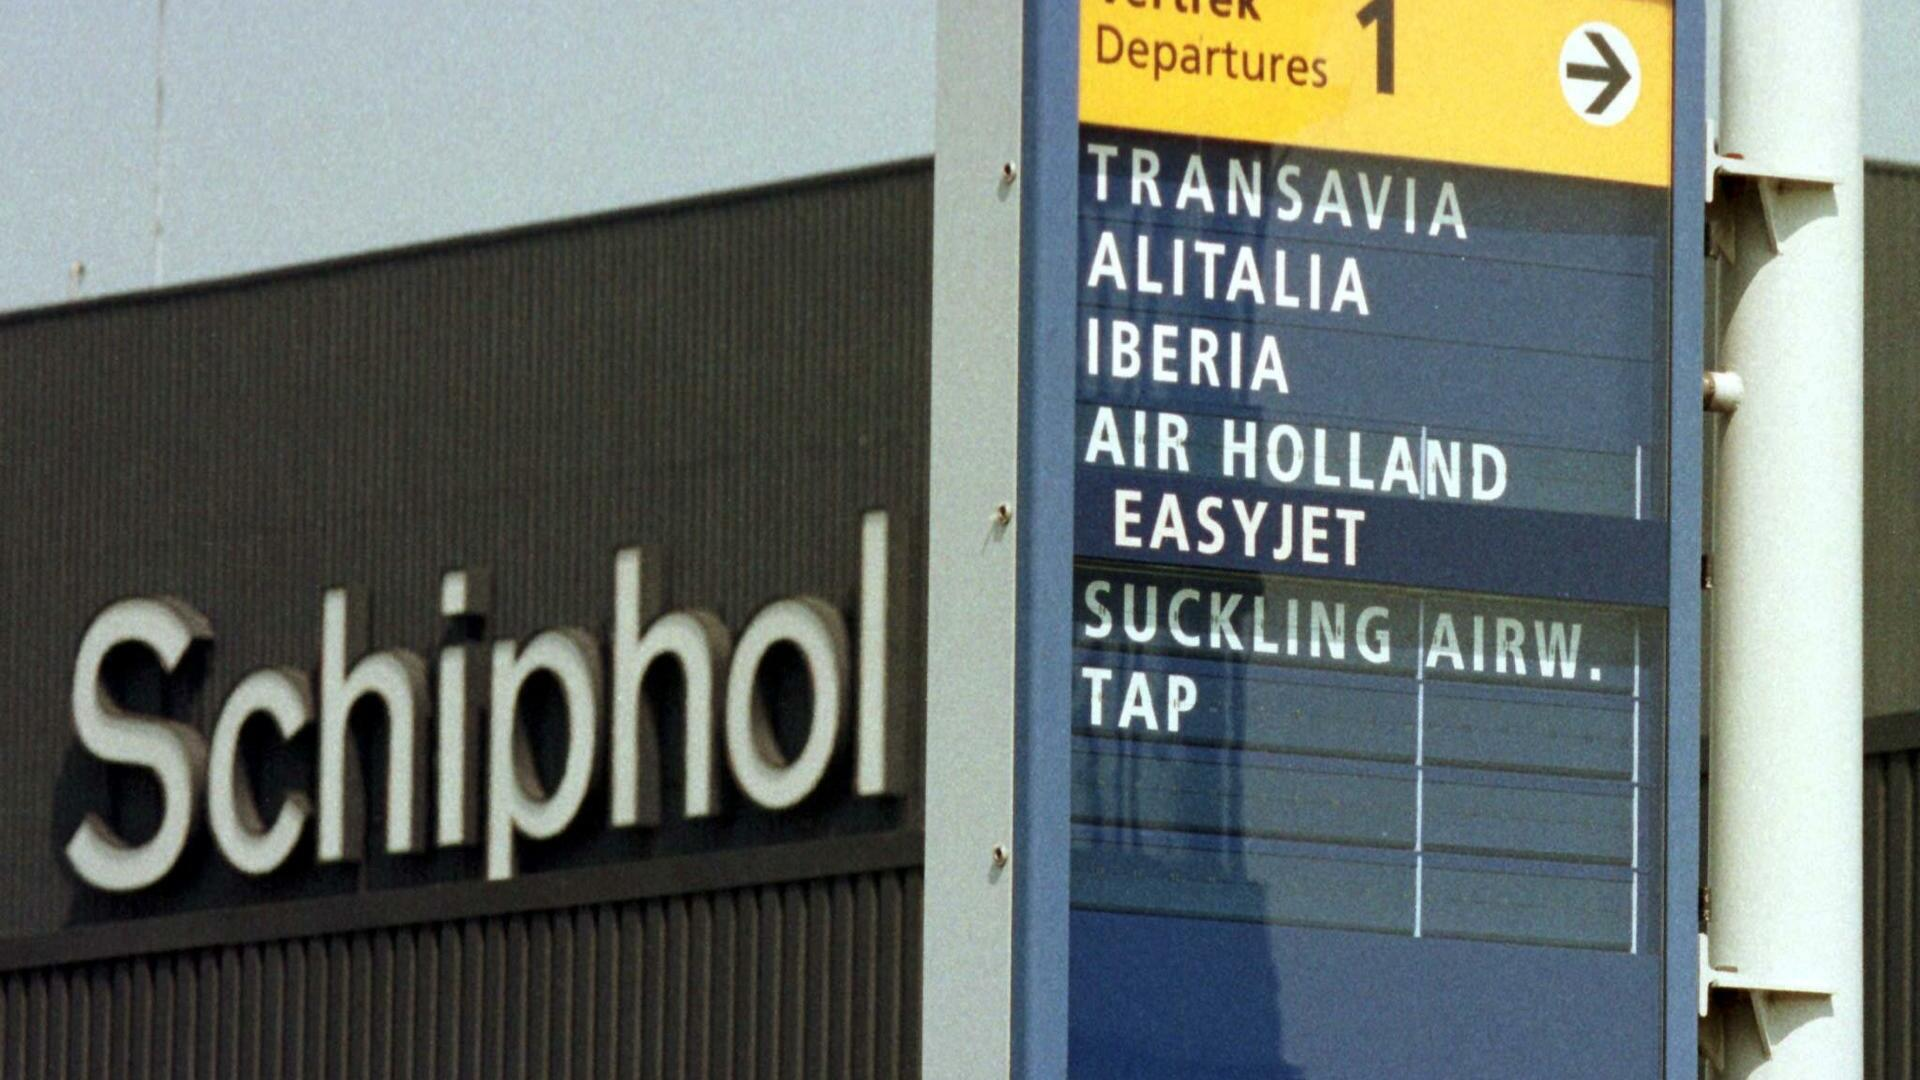 Sign shows direction to the departure of Alitalia and Iberia flights at Amsterdam Schiphol airport Quelle: REUTERS